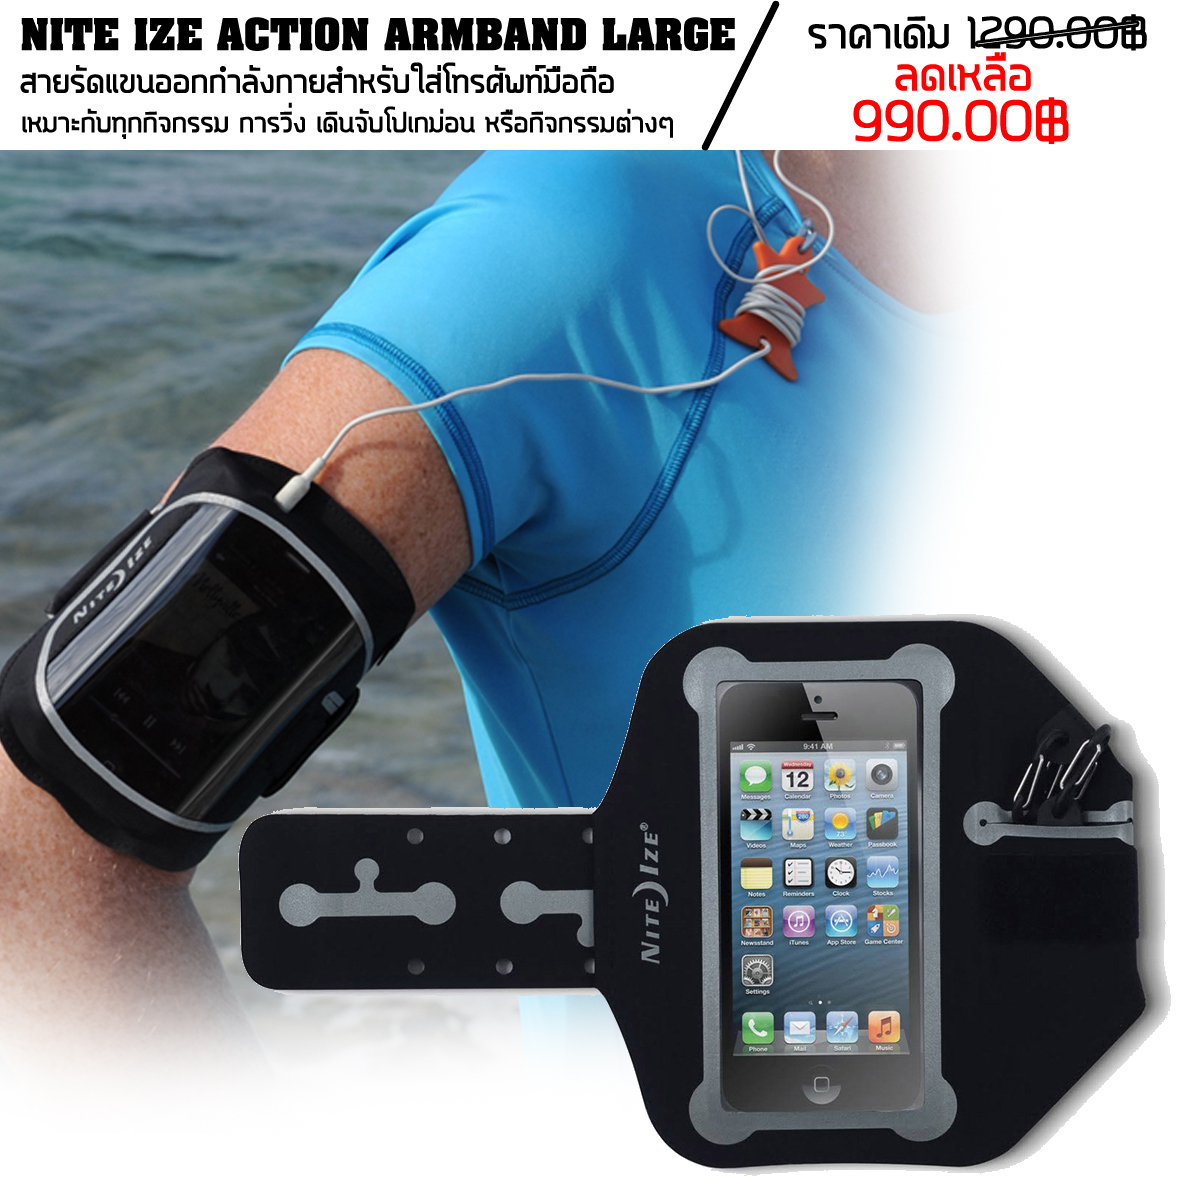 nite-ize-action-armband-large